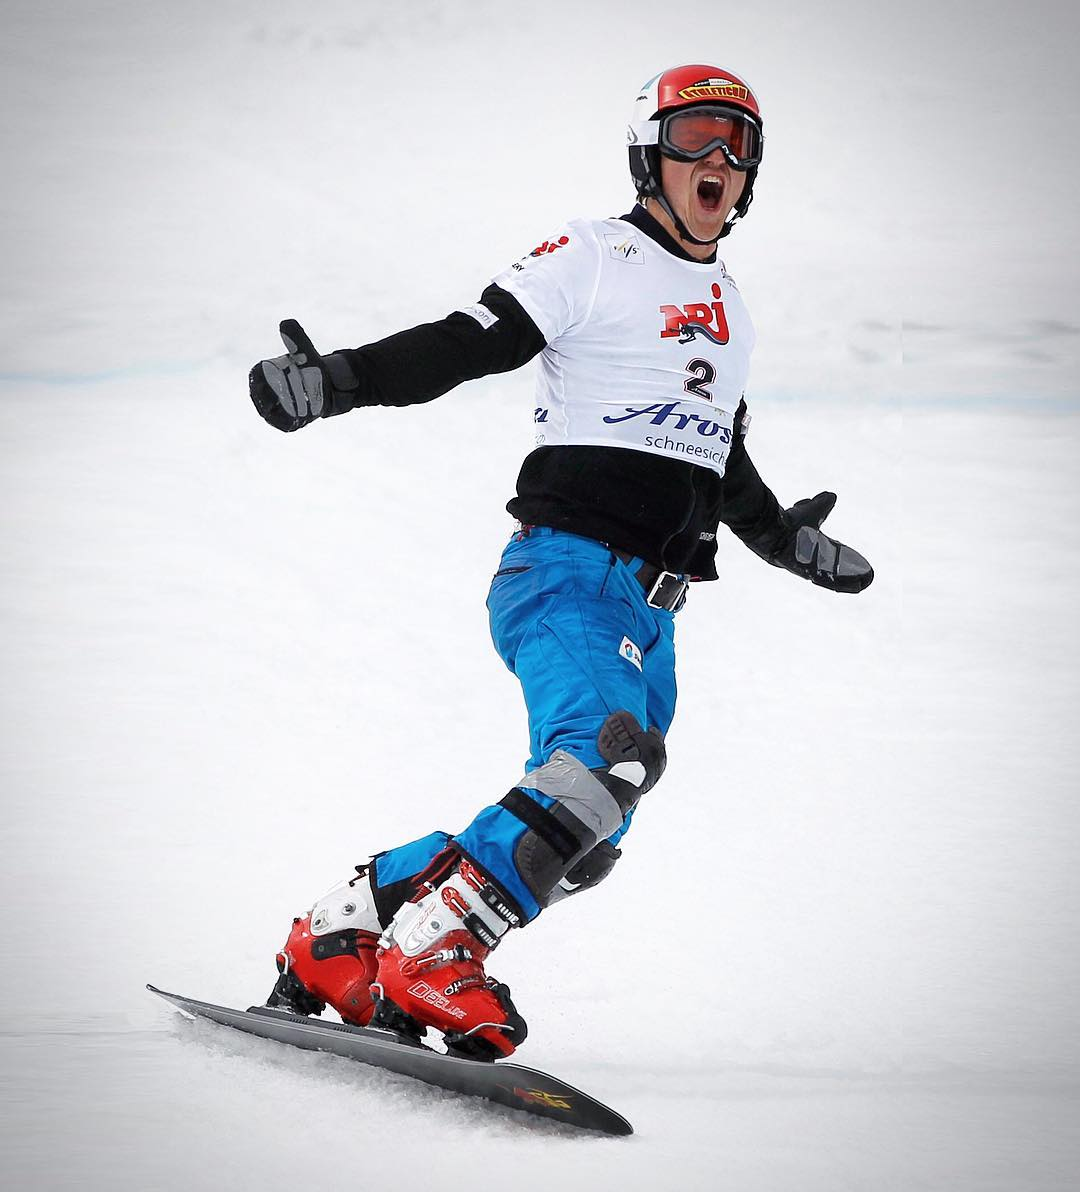 to my first ever @fissnowboard Worldcup podium back in 2011. It was not only my career's first top 3, it was also the first time when I performed well in front of my family and friends as this race was basically on home soil in @arosalenzerheide . Before that race I always had trouble to ride well when my family and friends were watching live as I was way too motivated. I learned to stay true to my values in any situations - this was the first race when the mental training paid off.